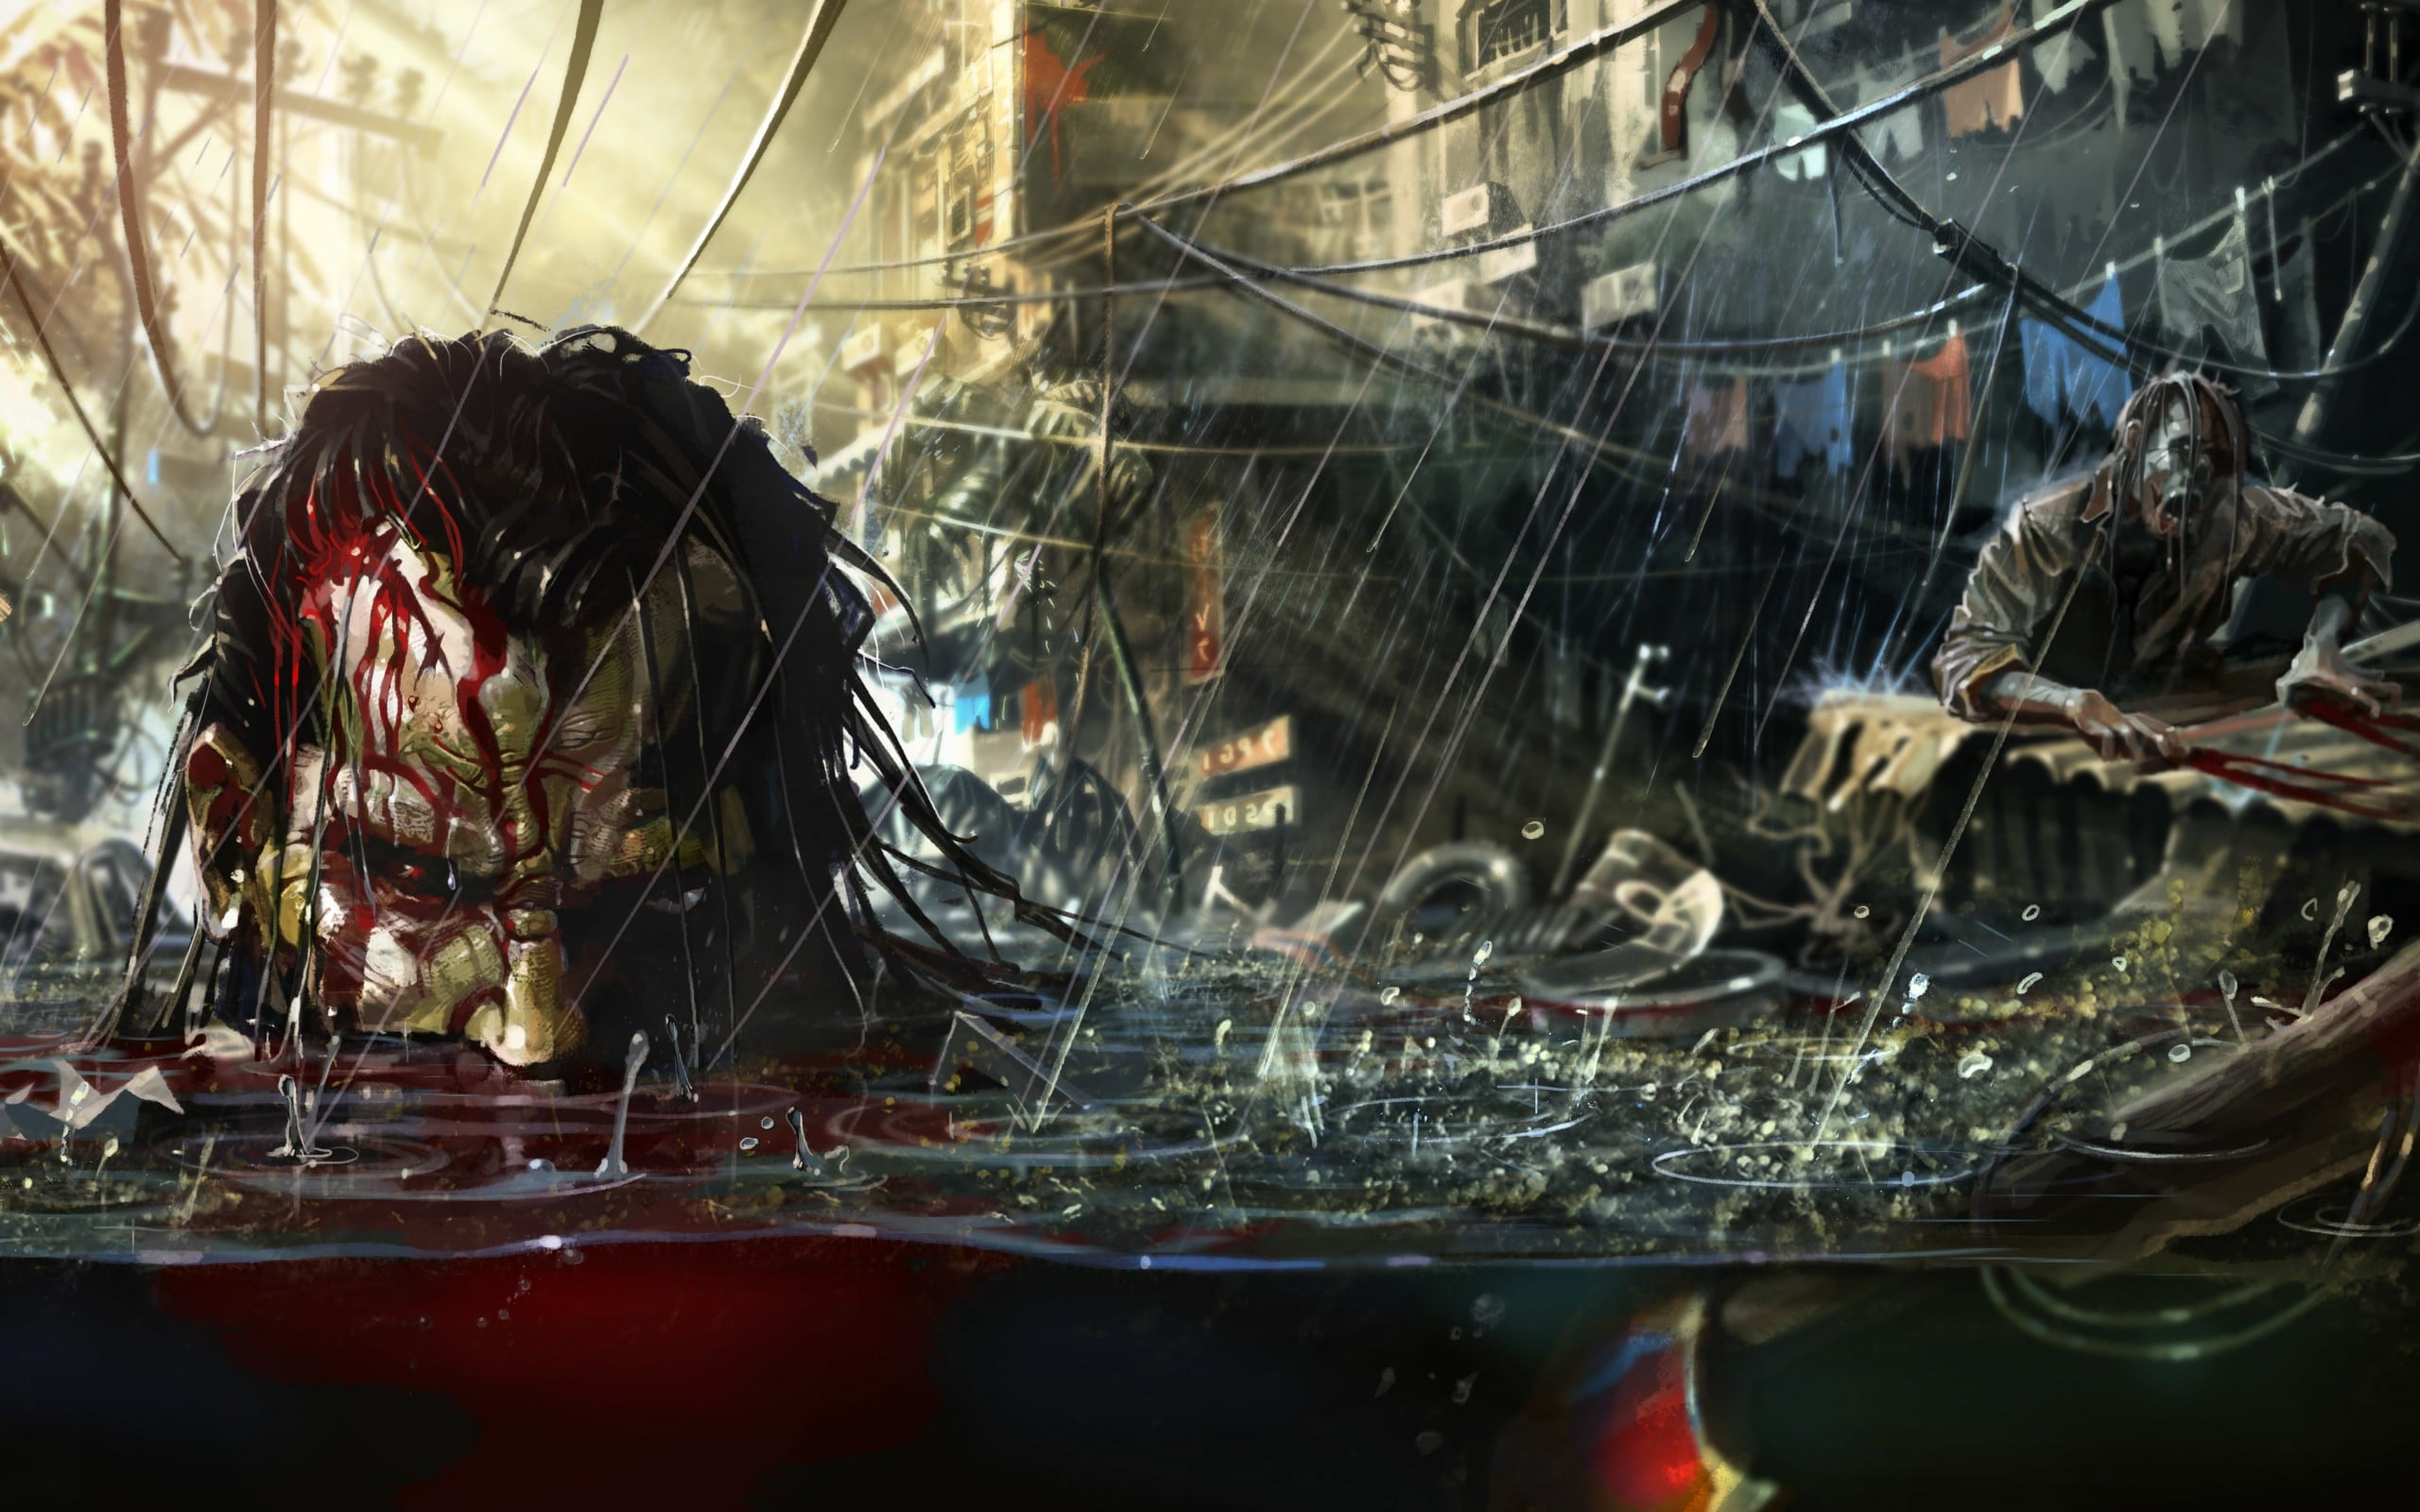 Car Games Wallpapers Hd 1080p Dead Island 2 Wallpapers High Quality Download